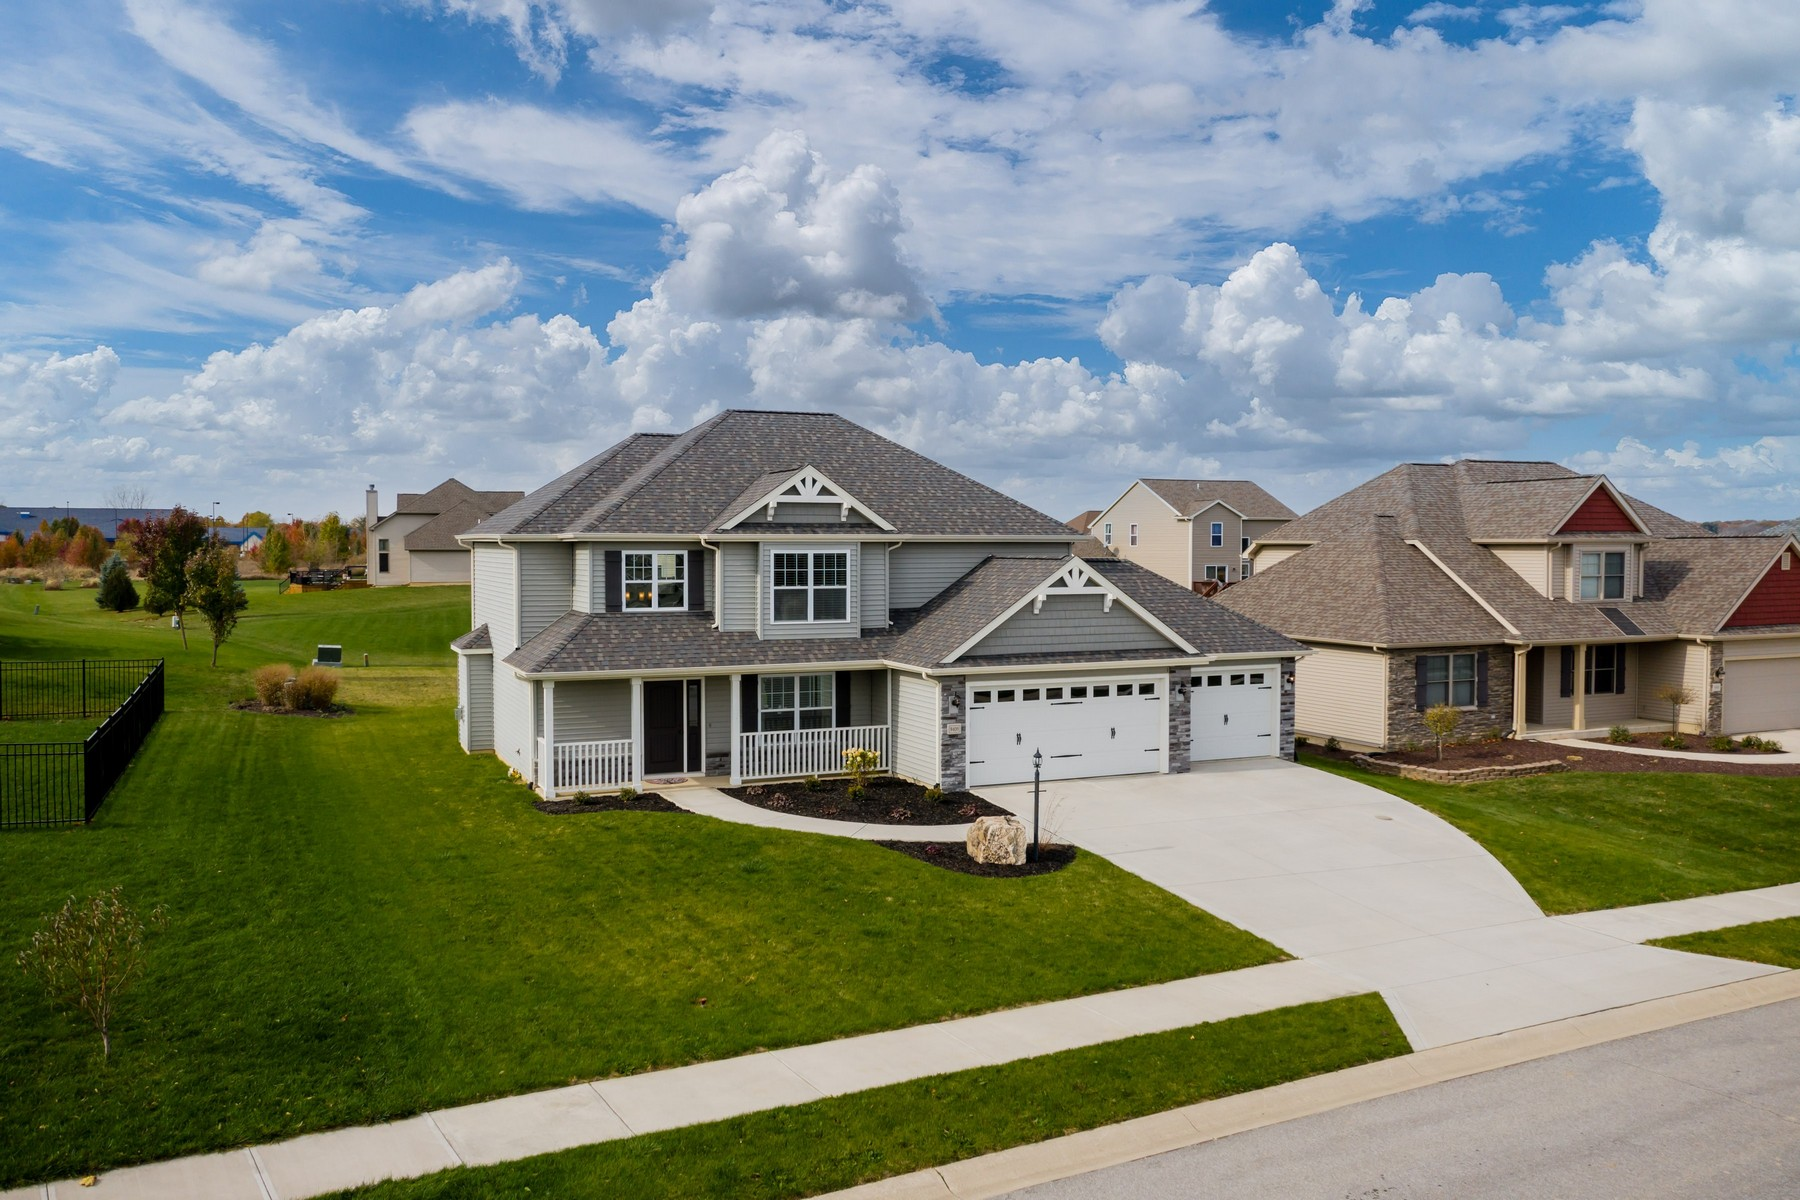 Single Family Homes for Active at Newer Build in Roanoke 9408 Prairie Meadows Drive Roanoke, Indiana 46783 United States